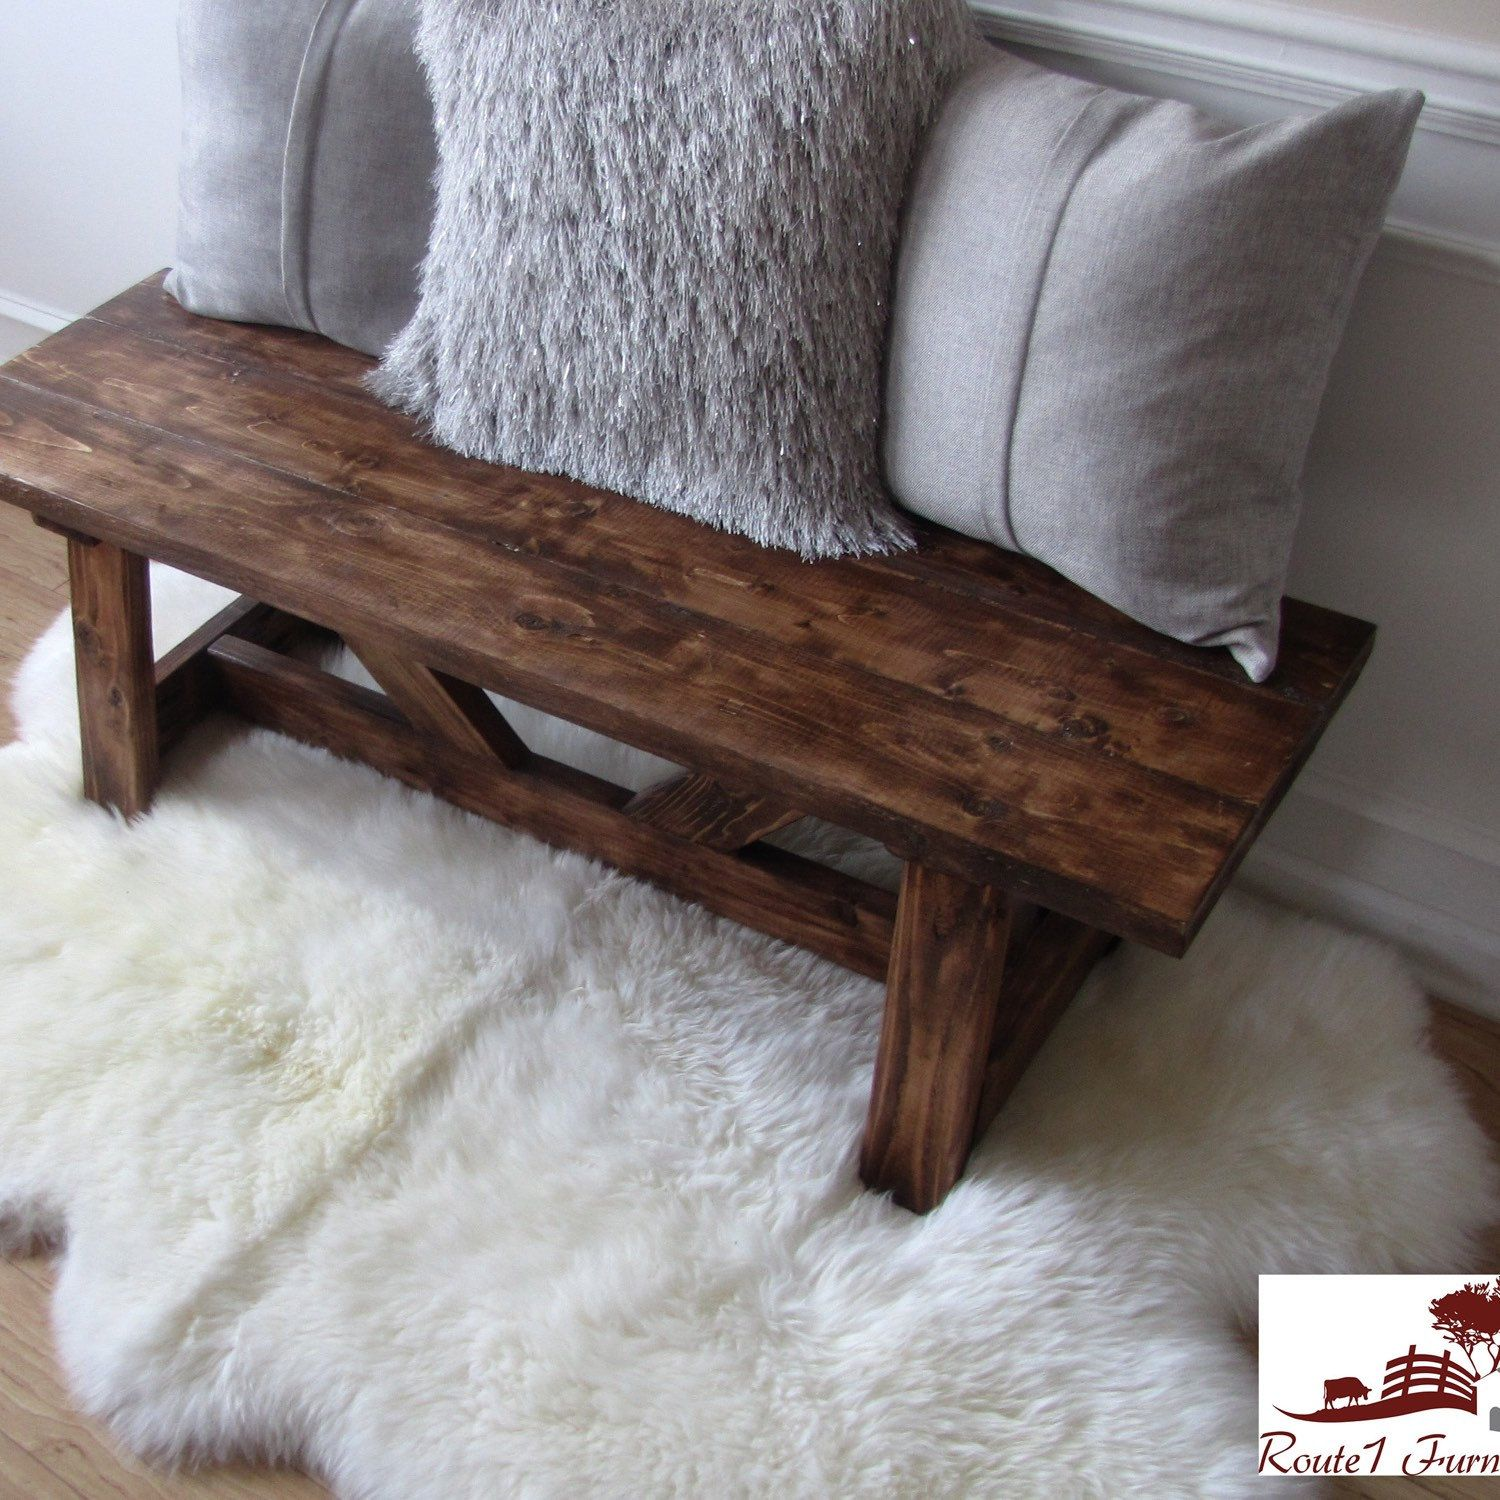 Will this great Providence bench find a cozy spot in your home next? #providence #bench #rustic #providencebench #handcrafted #madeinusa #homedecor